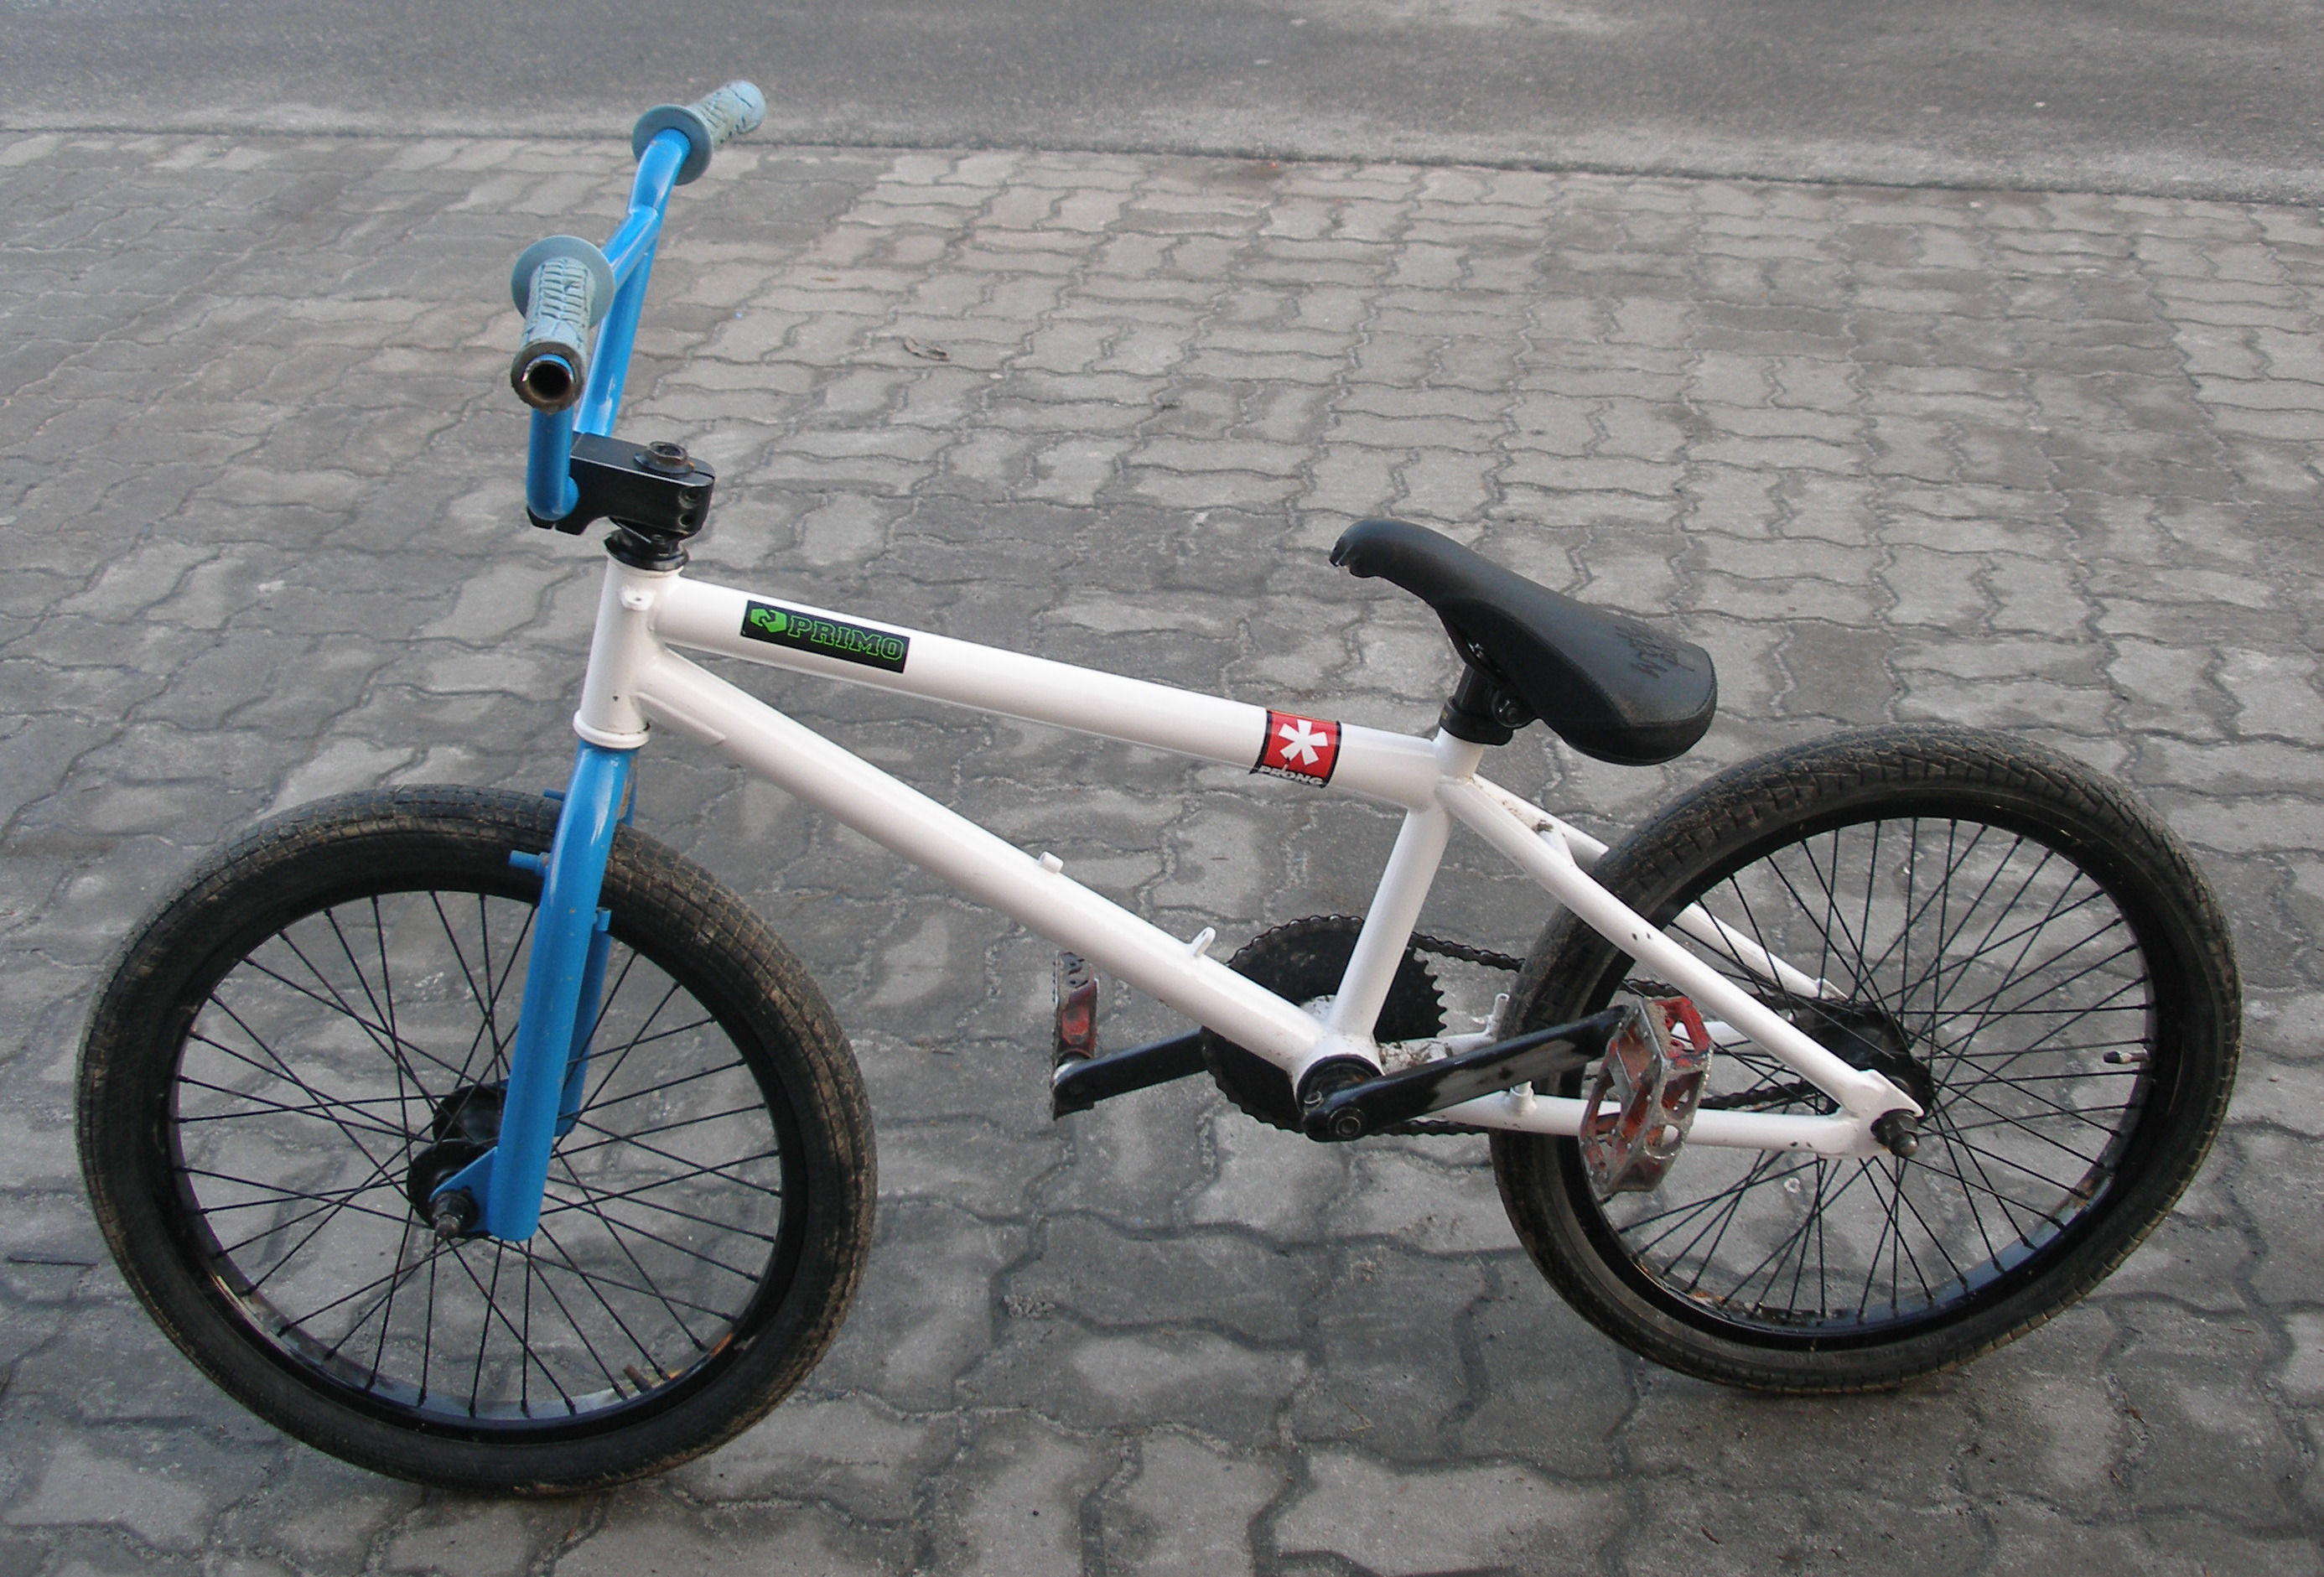 Bike Pegs Wikipedia BMX bike